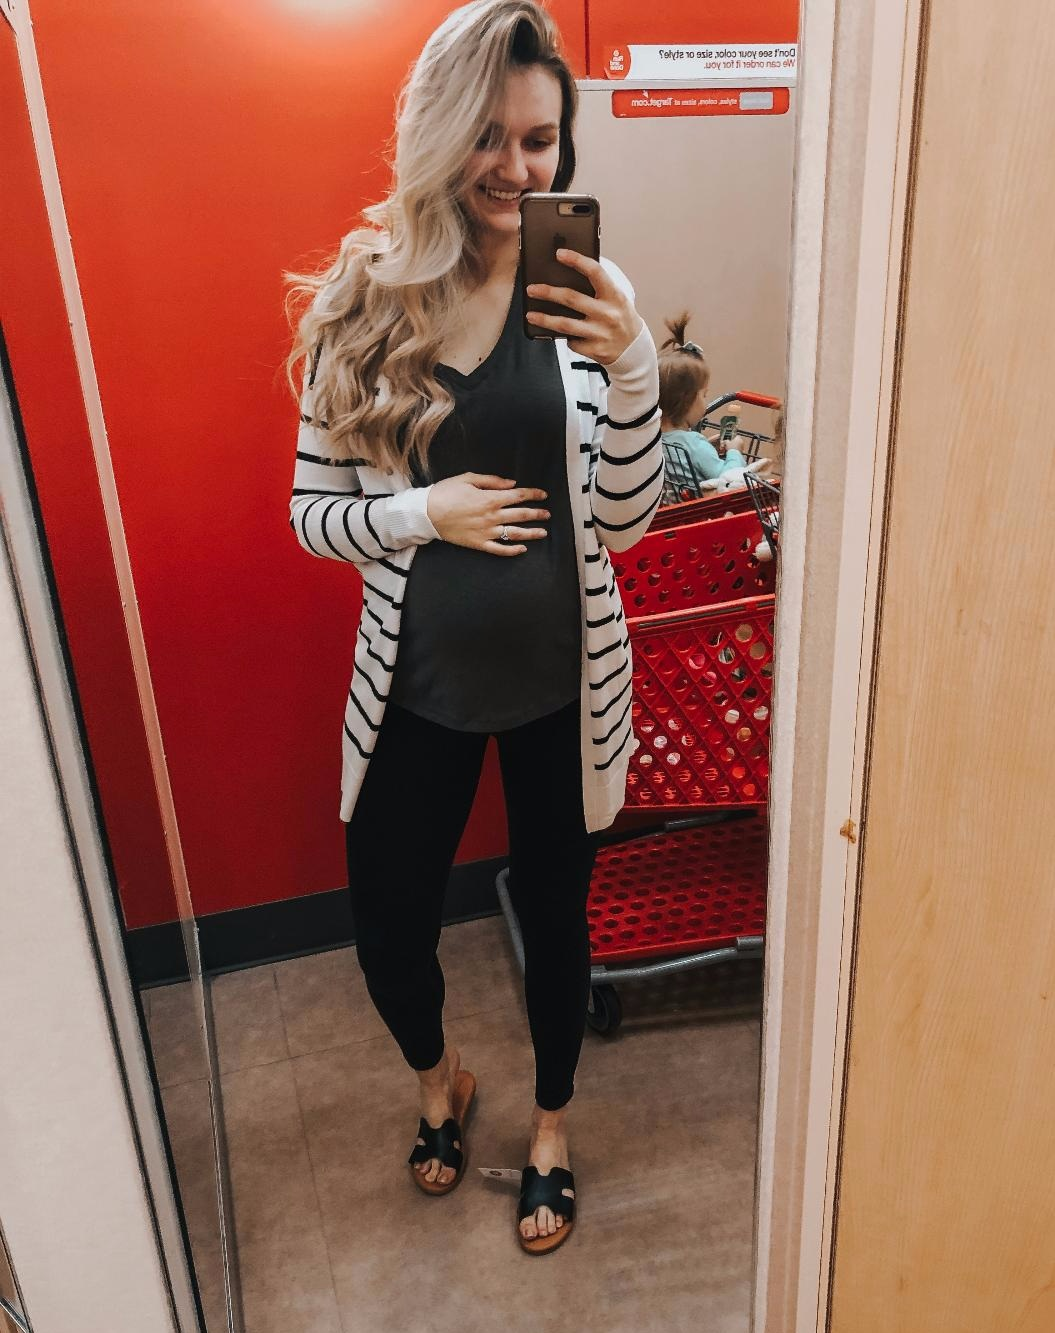 Black/White Striped Cardigan-  TTS. Wearing a small because its all they had, but would get medium.   Green Tee-  TTS, wearing medium.   Maternity Leggings-  Run big, wearing size small.   Black Sandals-  TTS